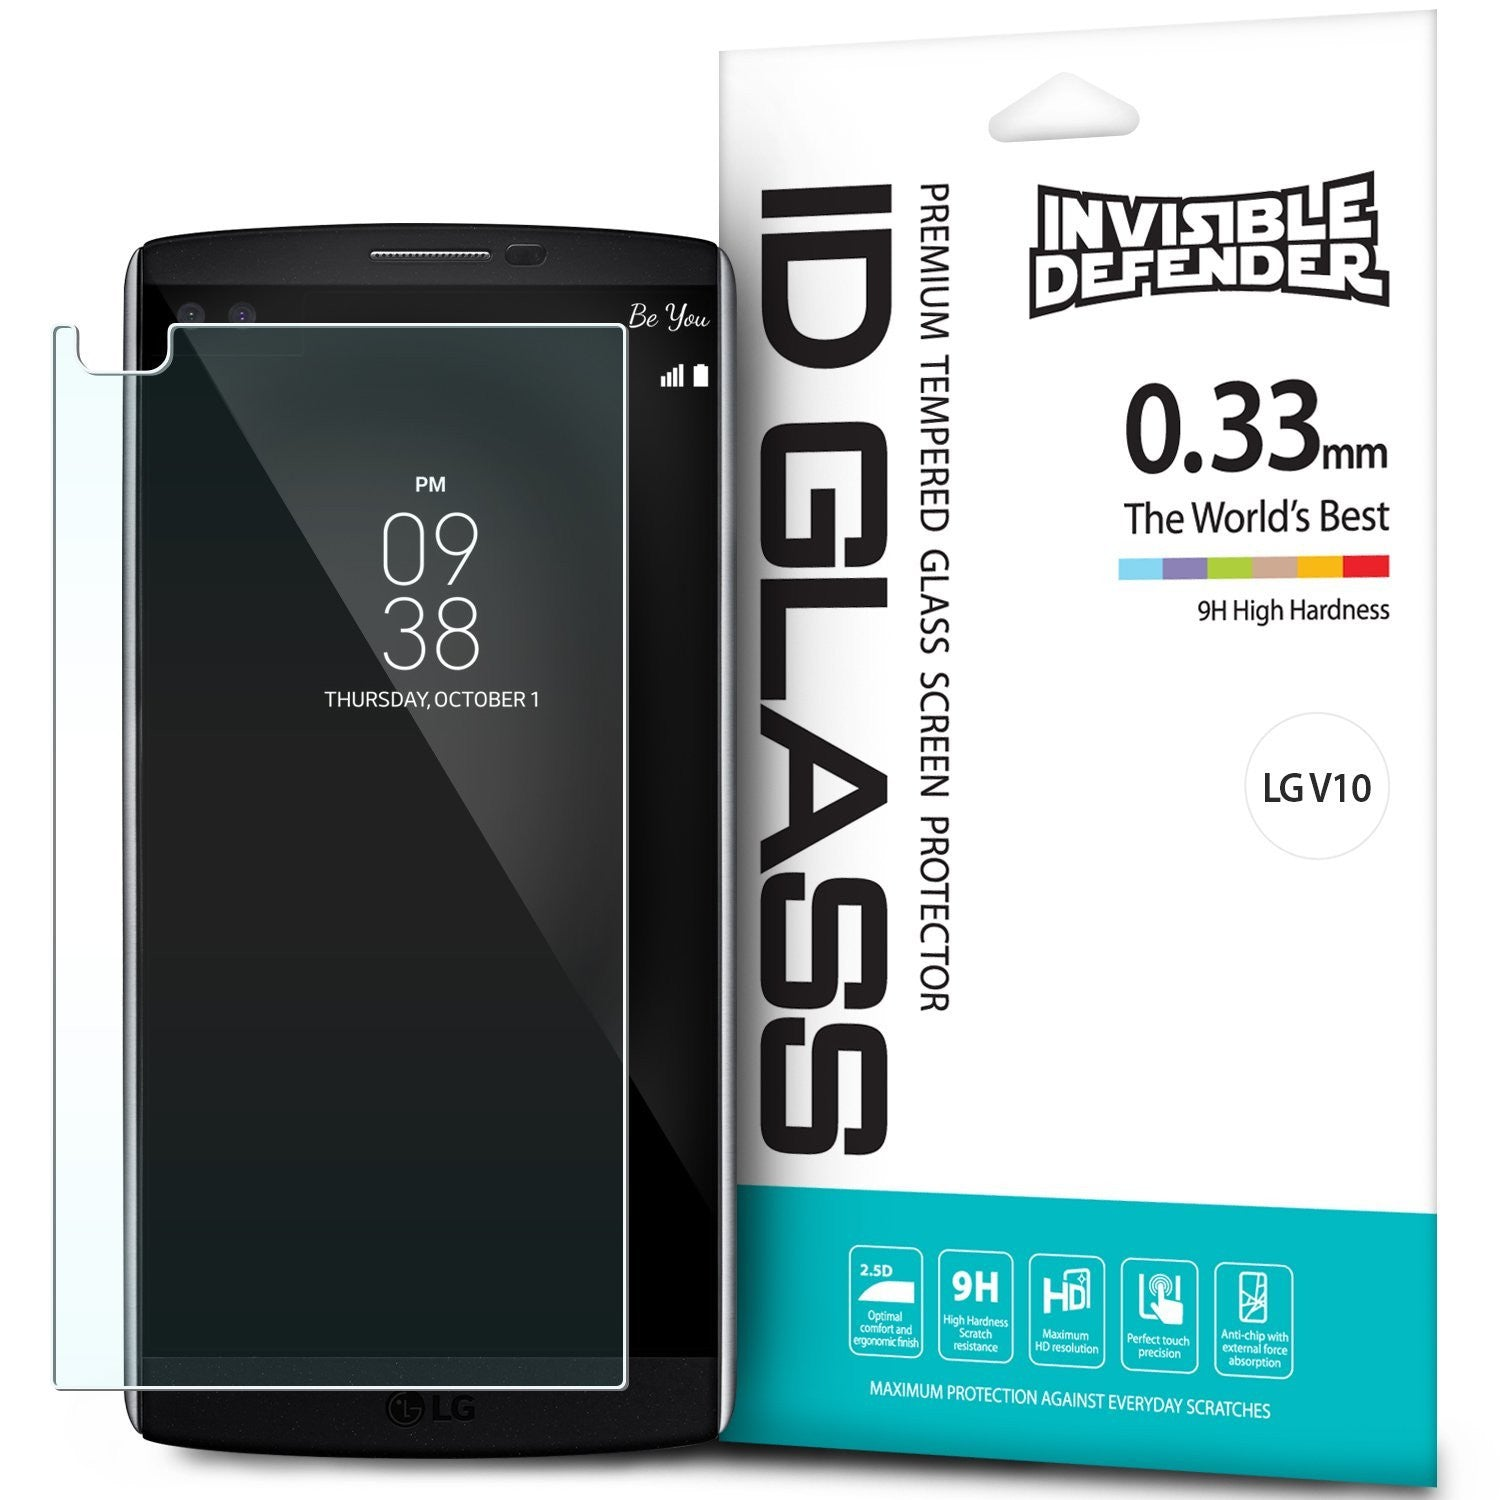 LG V10, Ringke®[INVISIBLE DEFENDER] Tempered Glass Screen Protector